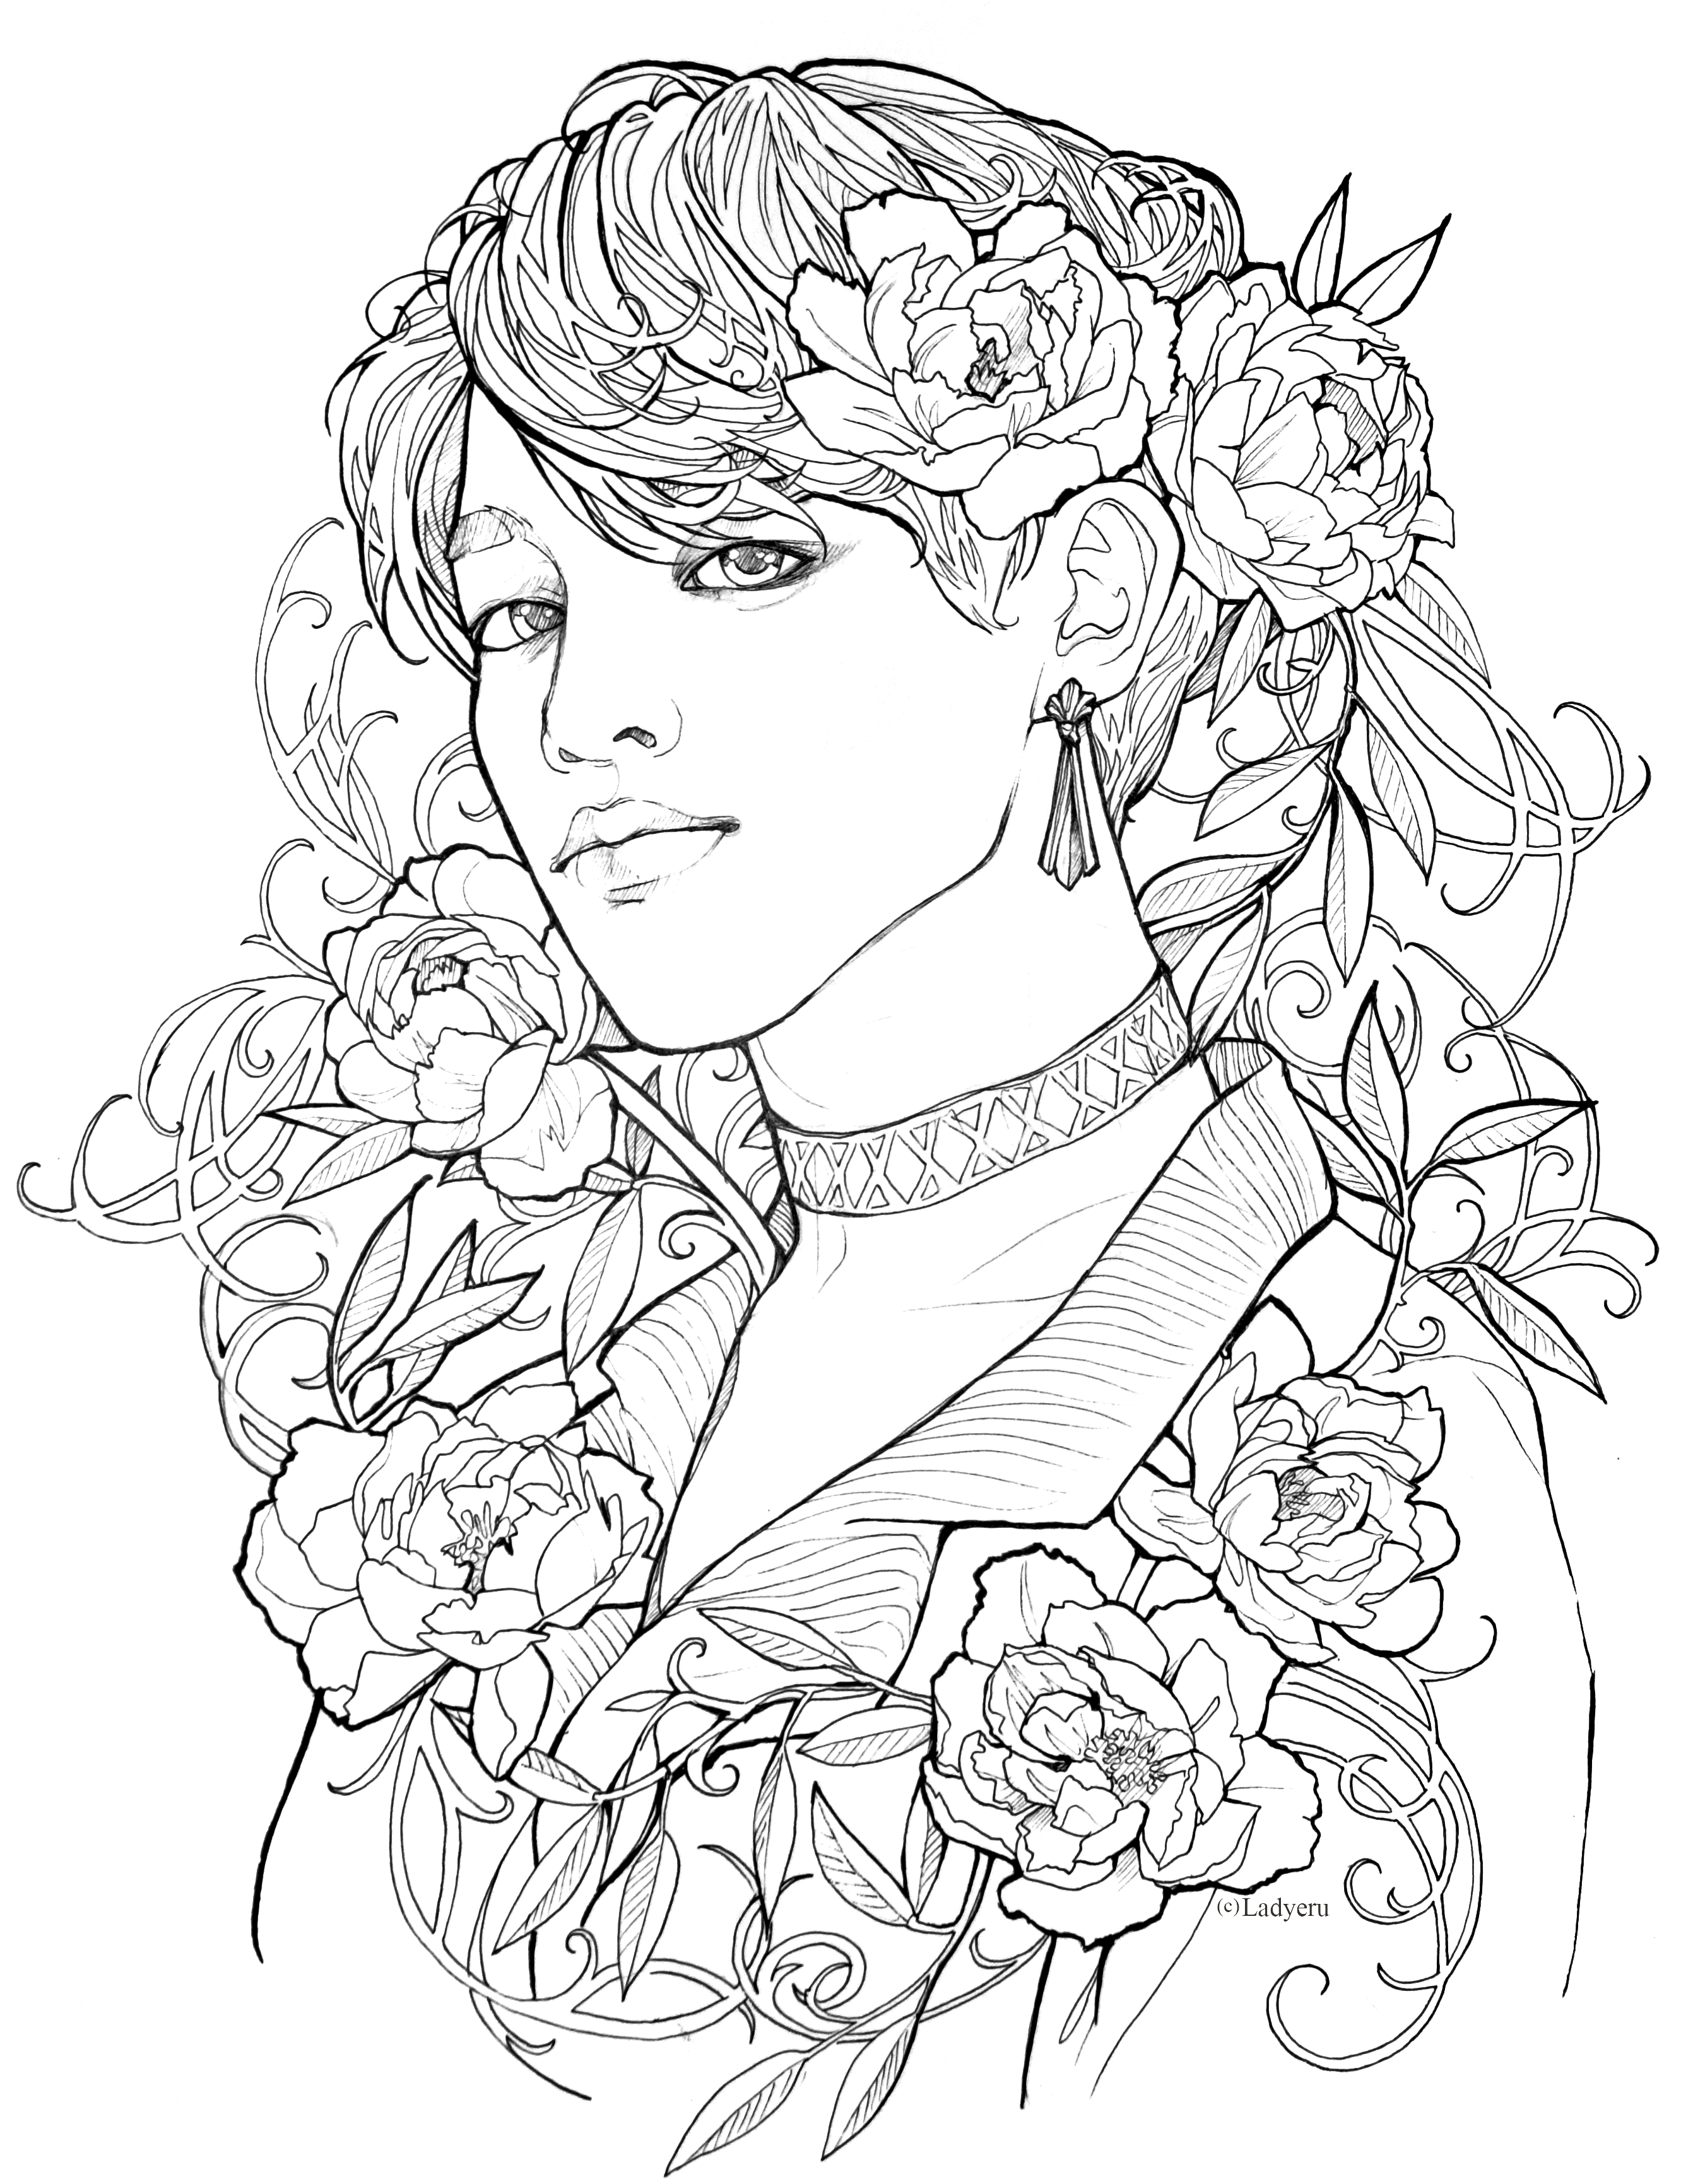 Park Jimin Lineart Page By Ladyeru 3 Bts Jimin Coloring Pages Christmas Coloring Pages Printable Christmas Coloring Pages